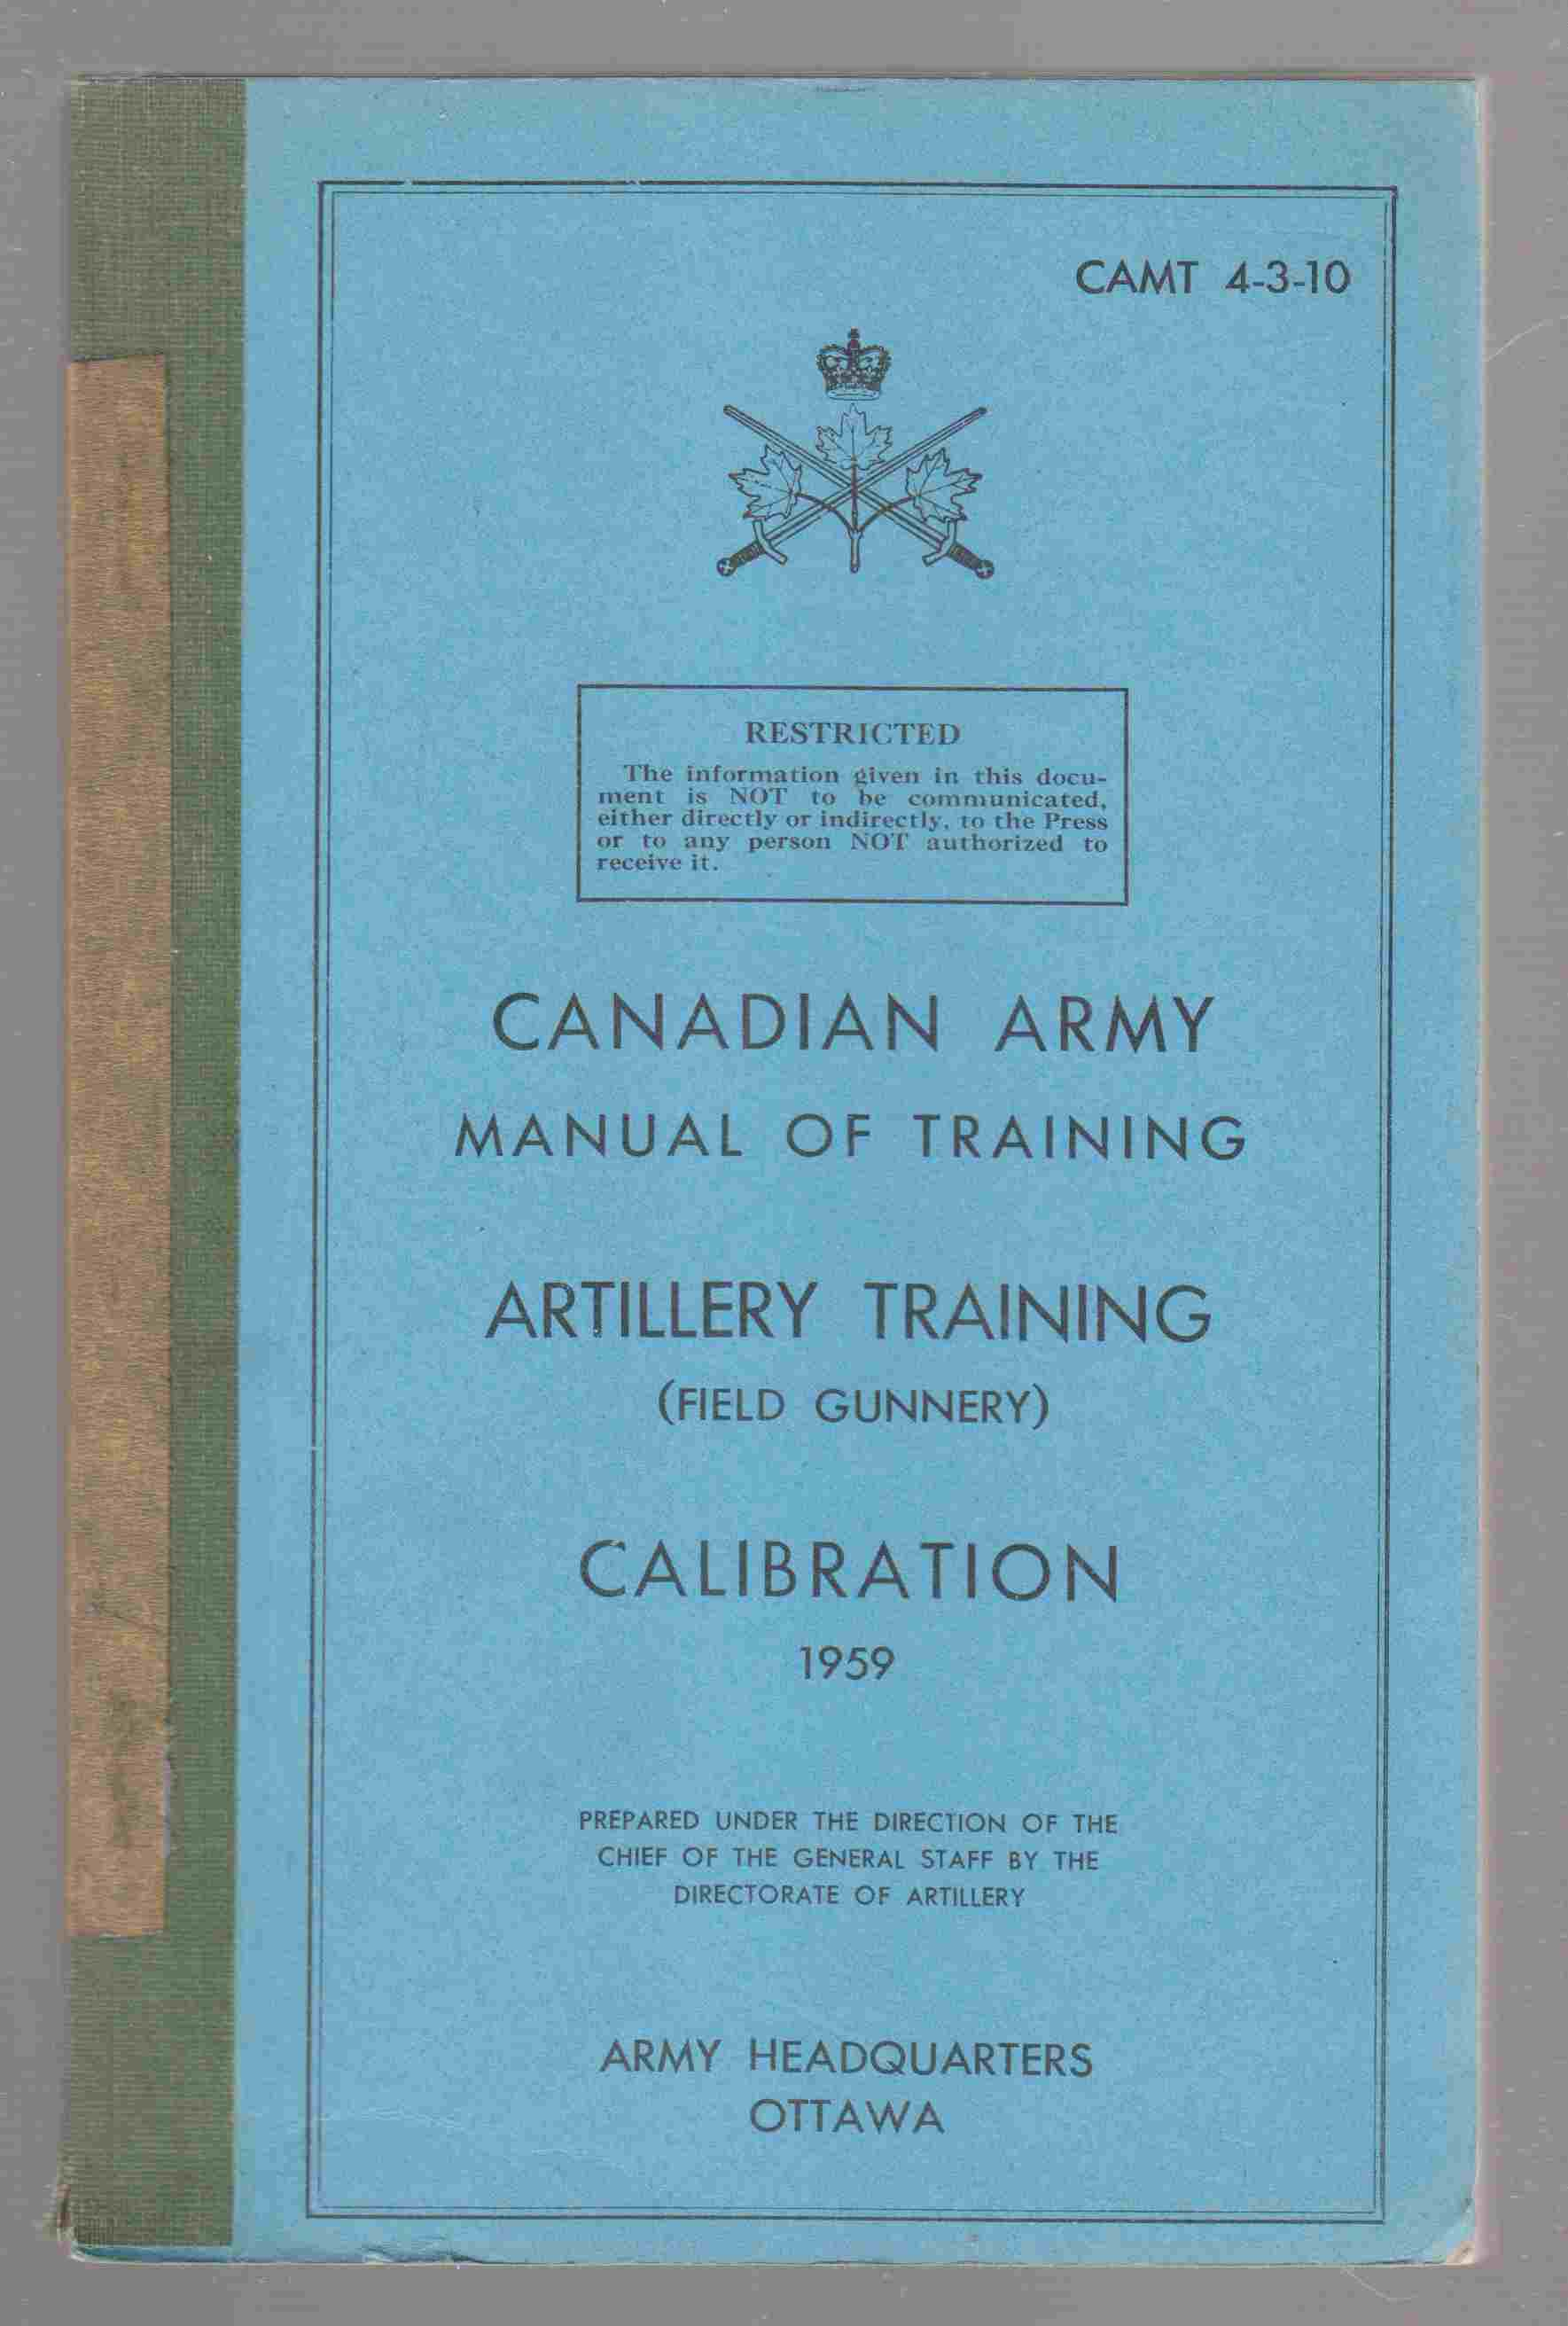 Image for Artillery Training (Field Gunnery) : Calibration CAMT 4-3-10